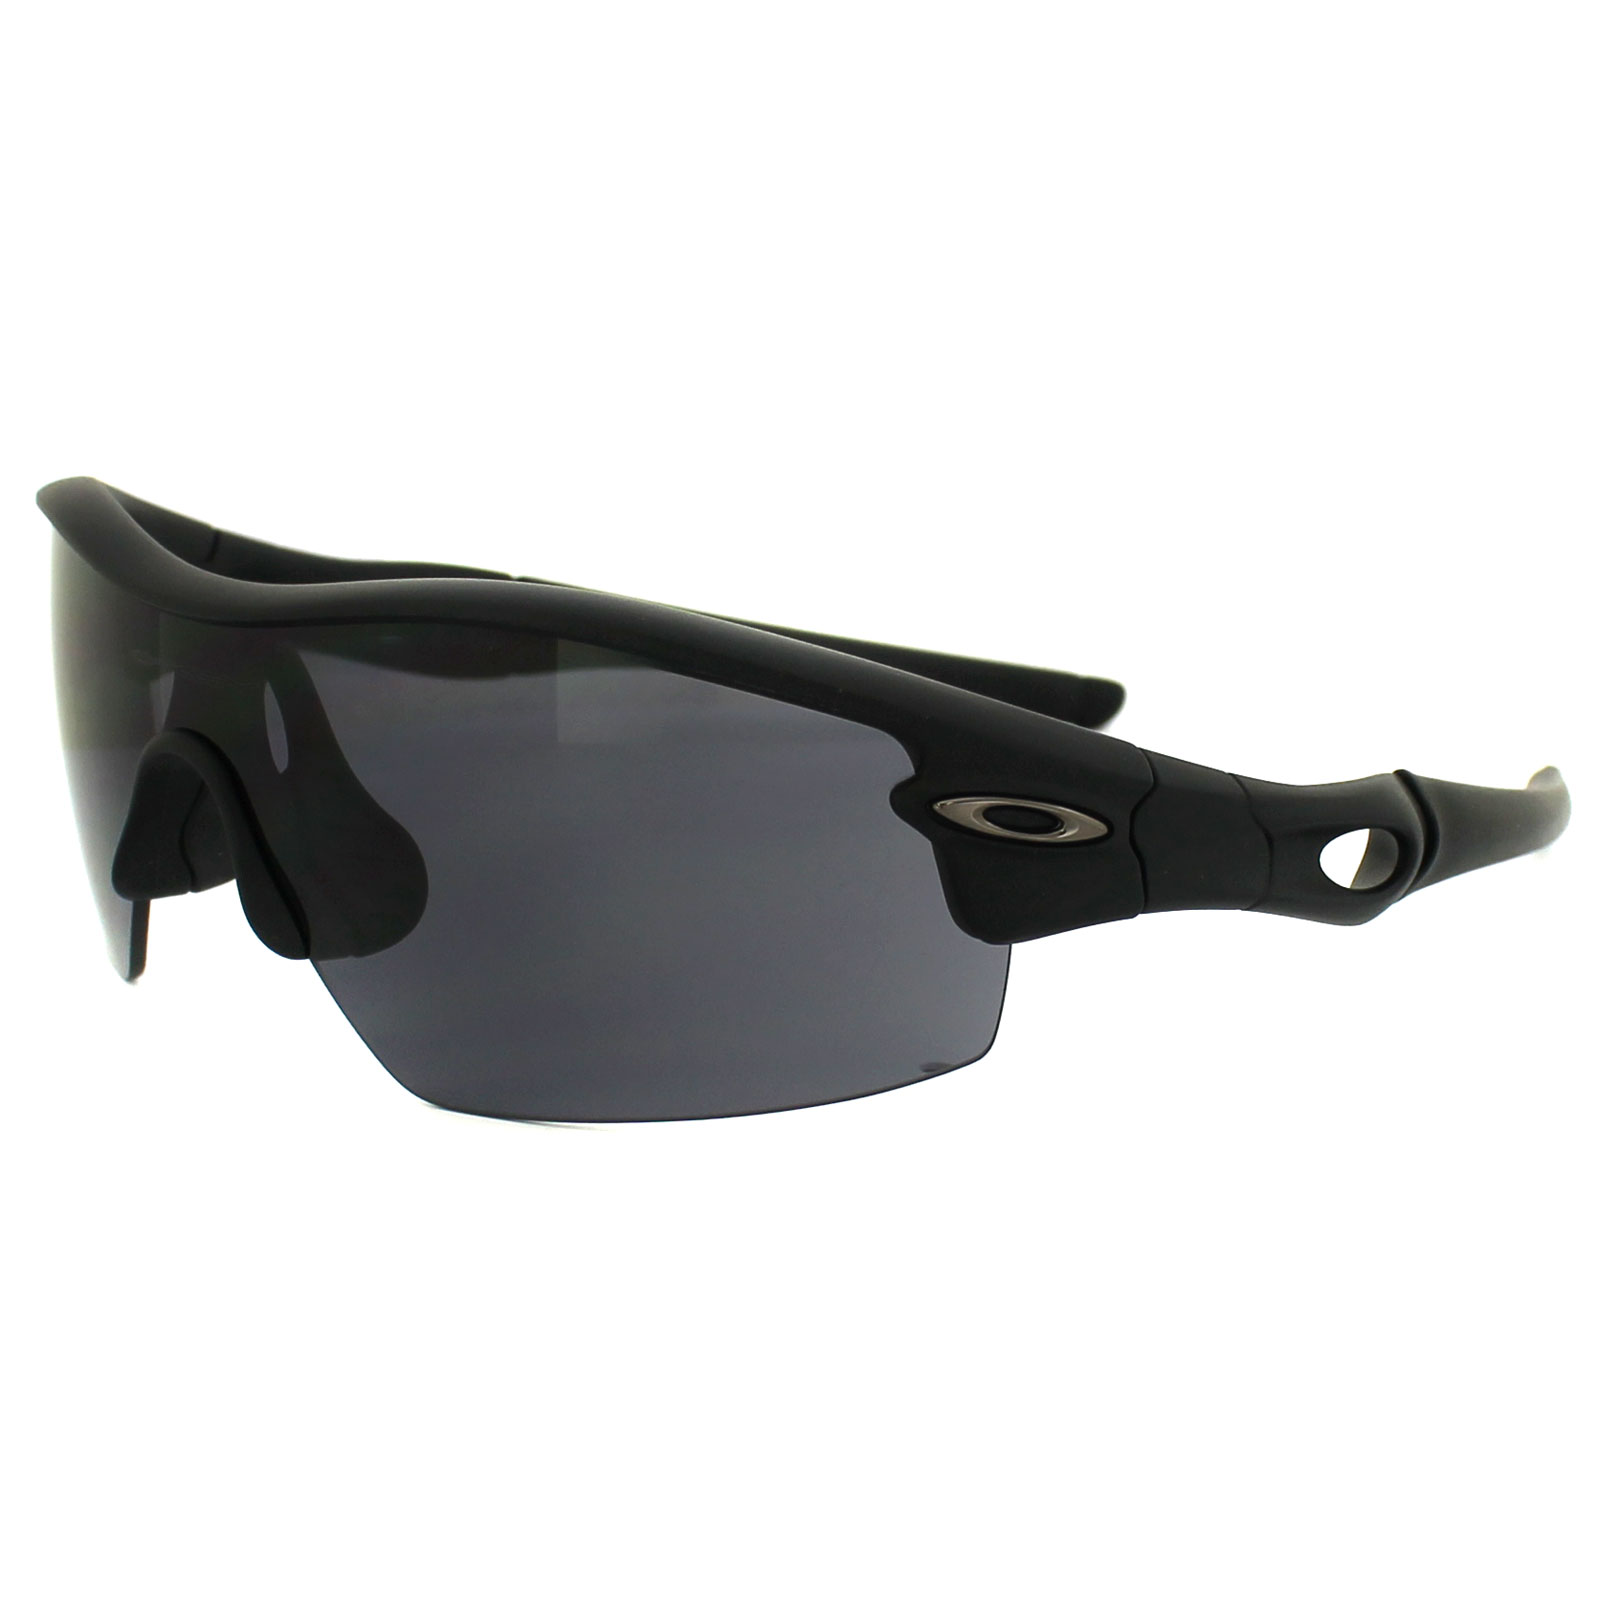 151b257f1af Oakley Radar Path Ebay « One More Soul